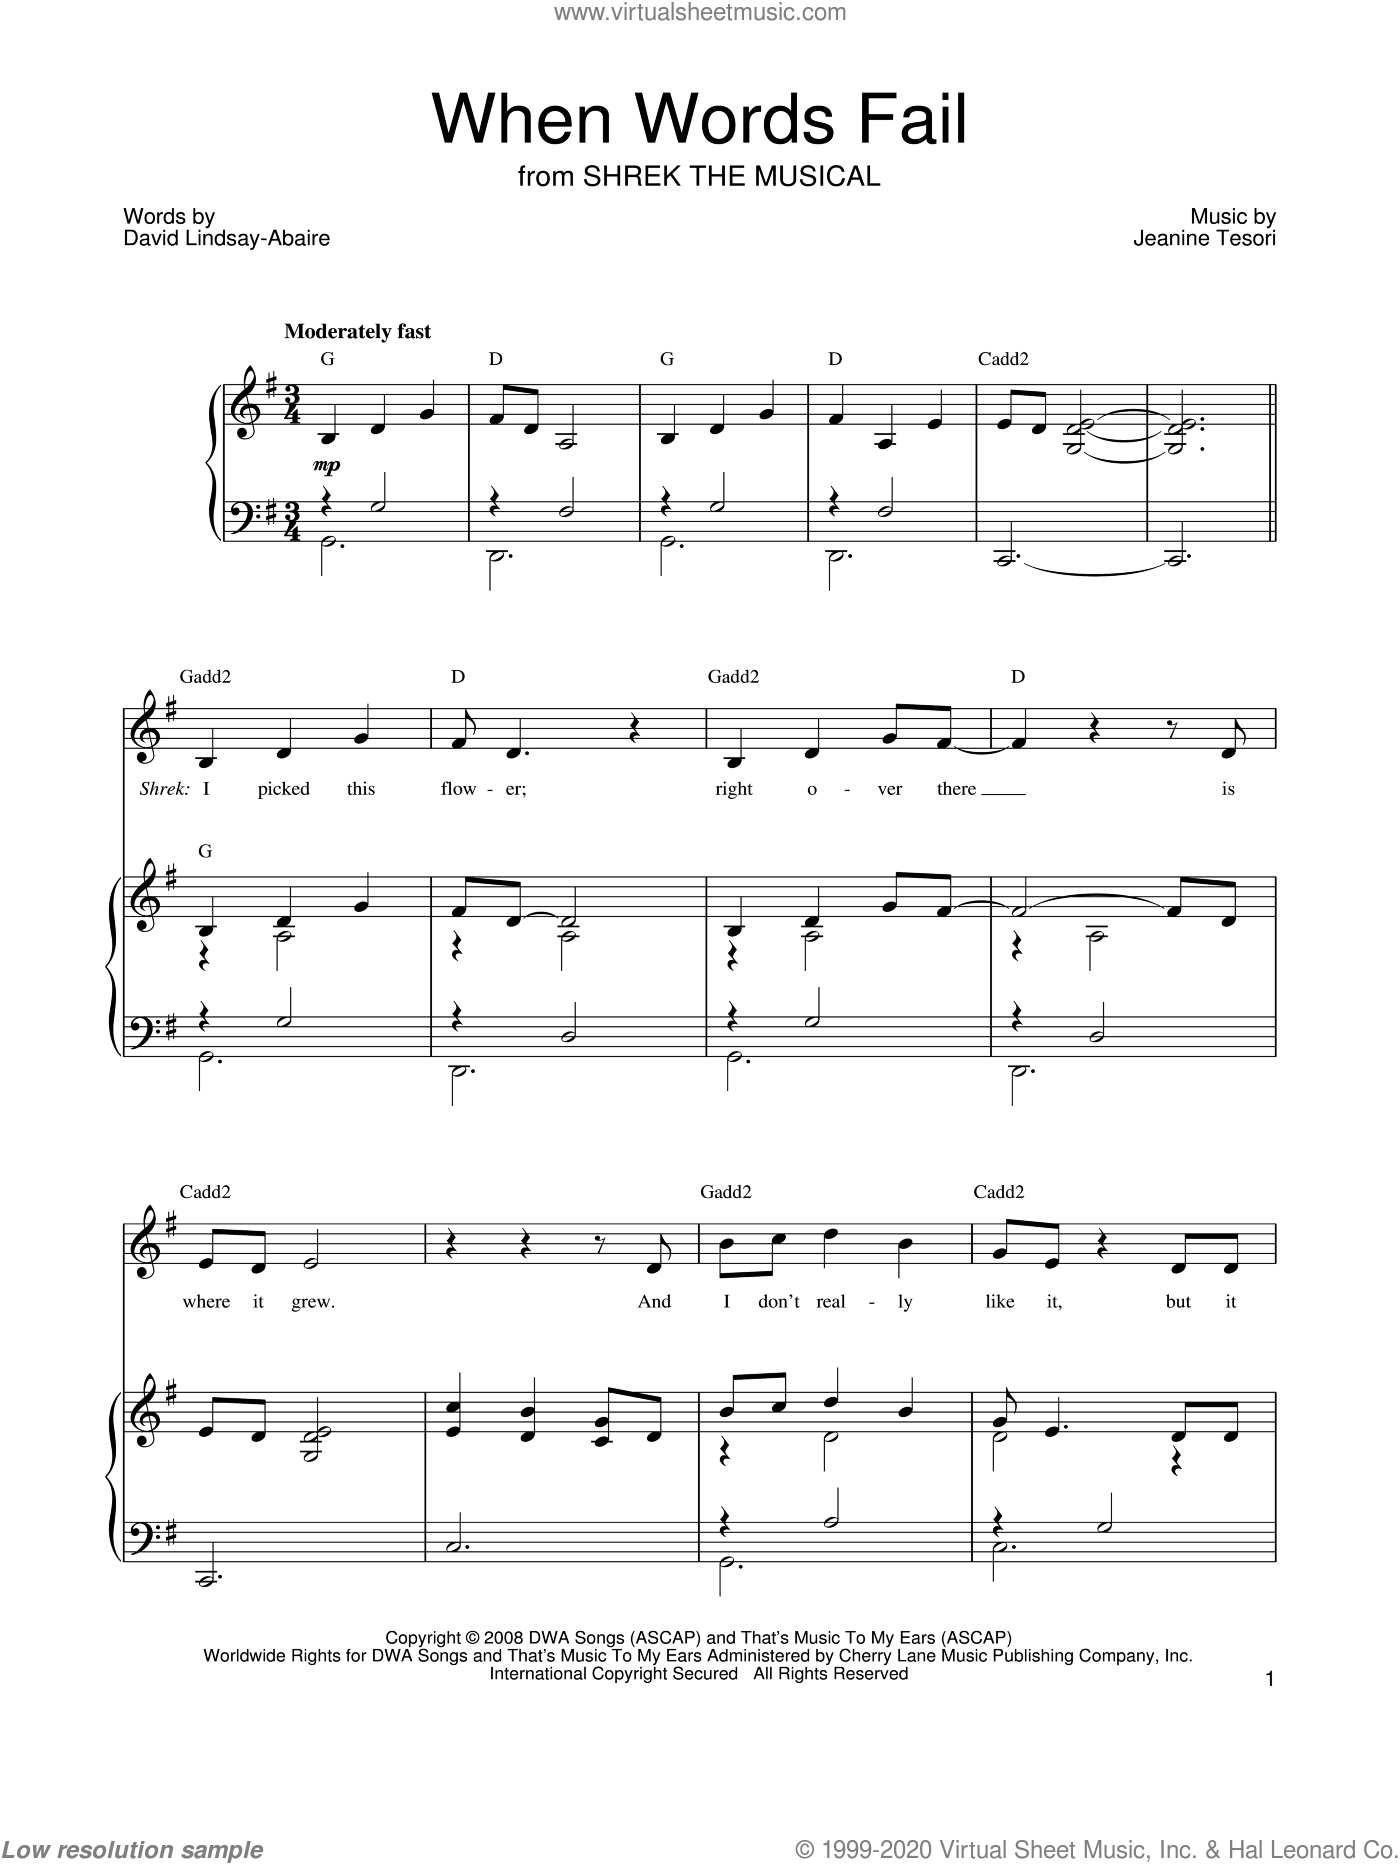 When Words Fail sheet music for voice, piano or guitar by Shrek The Musical, David Lindsay-Abaire and Jeanine Tesori, intermediate. Score Image Preview.